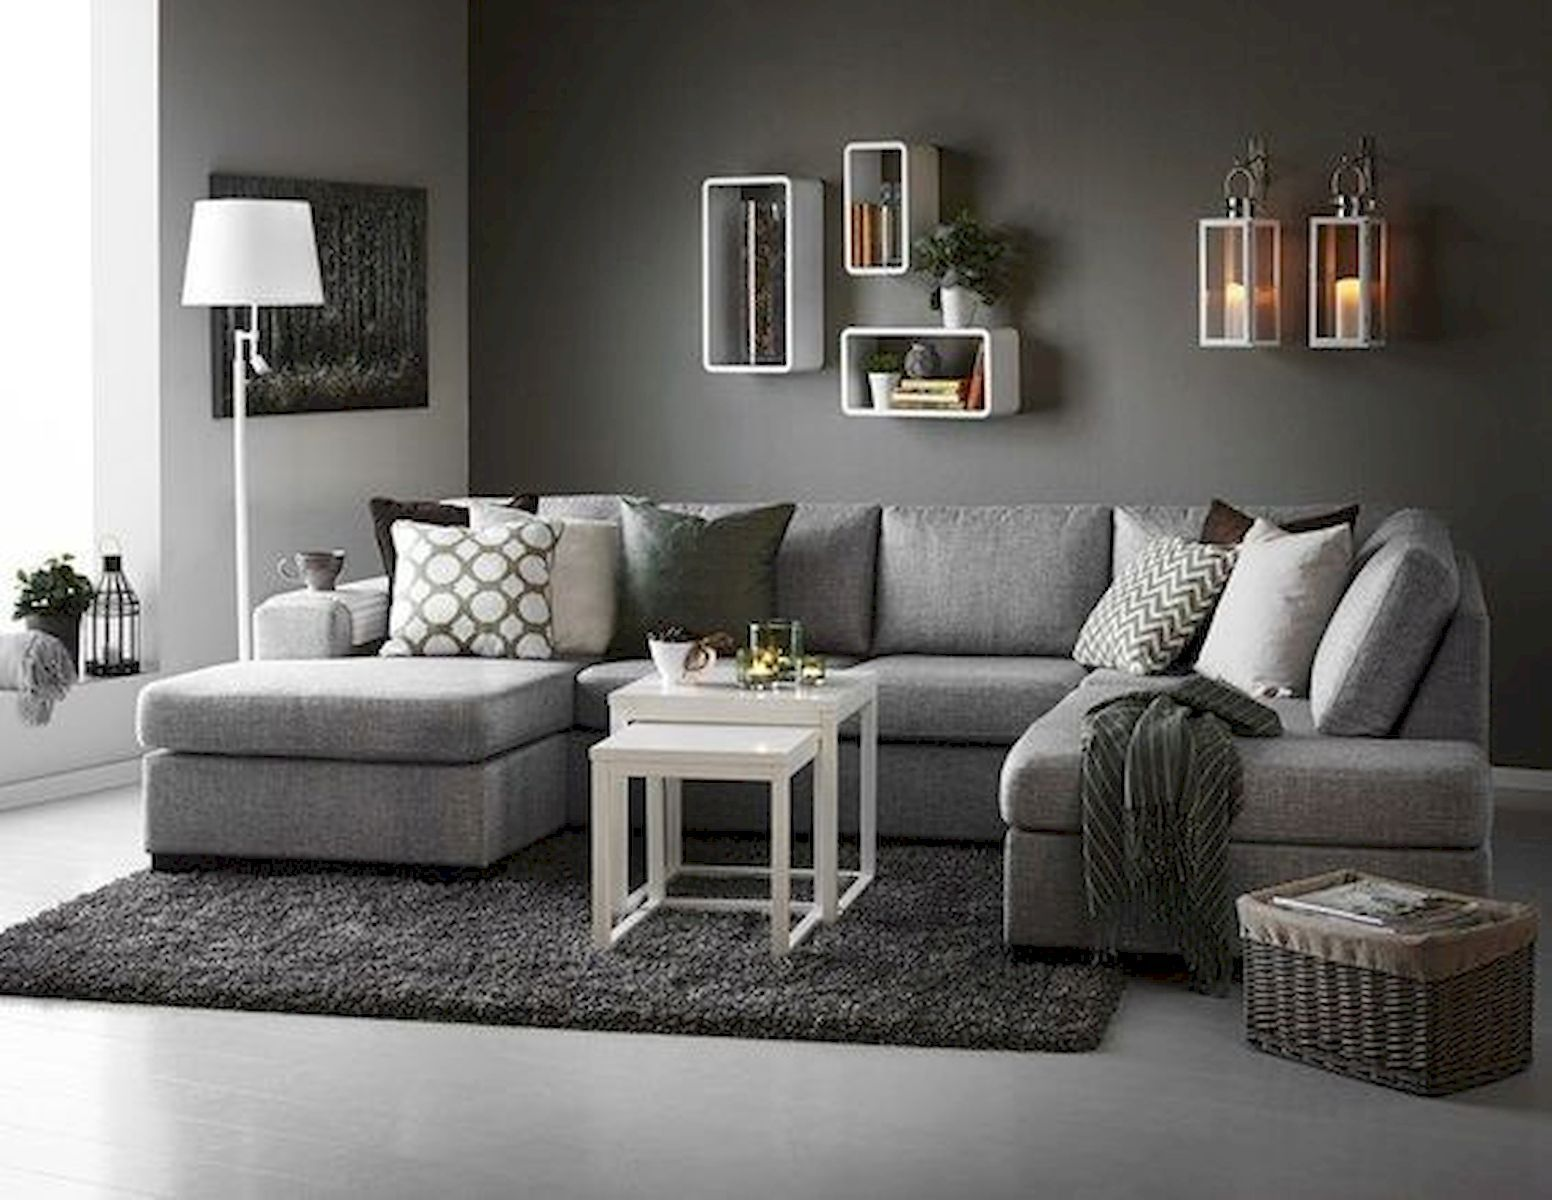 33 beautiful grey living room ideas decorations 58 in 2019 lounge rh pinterest ca